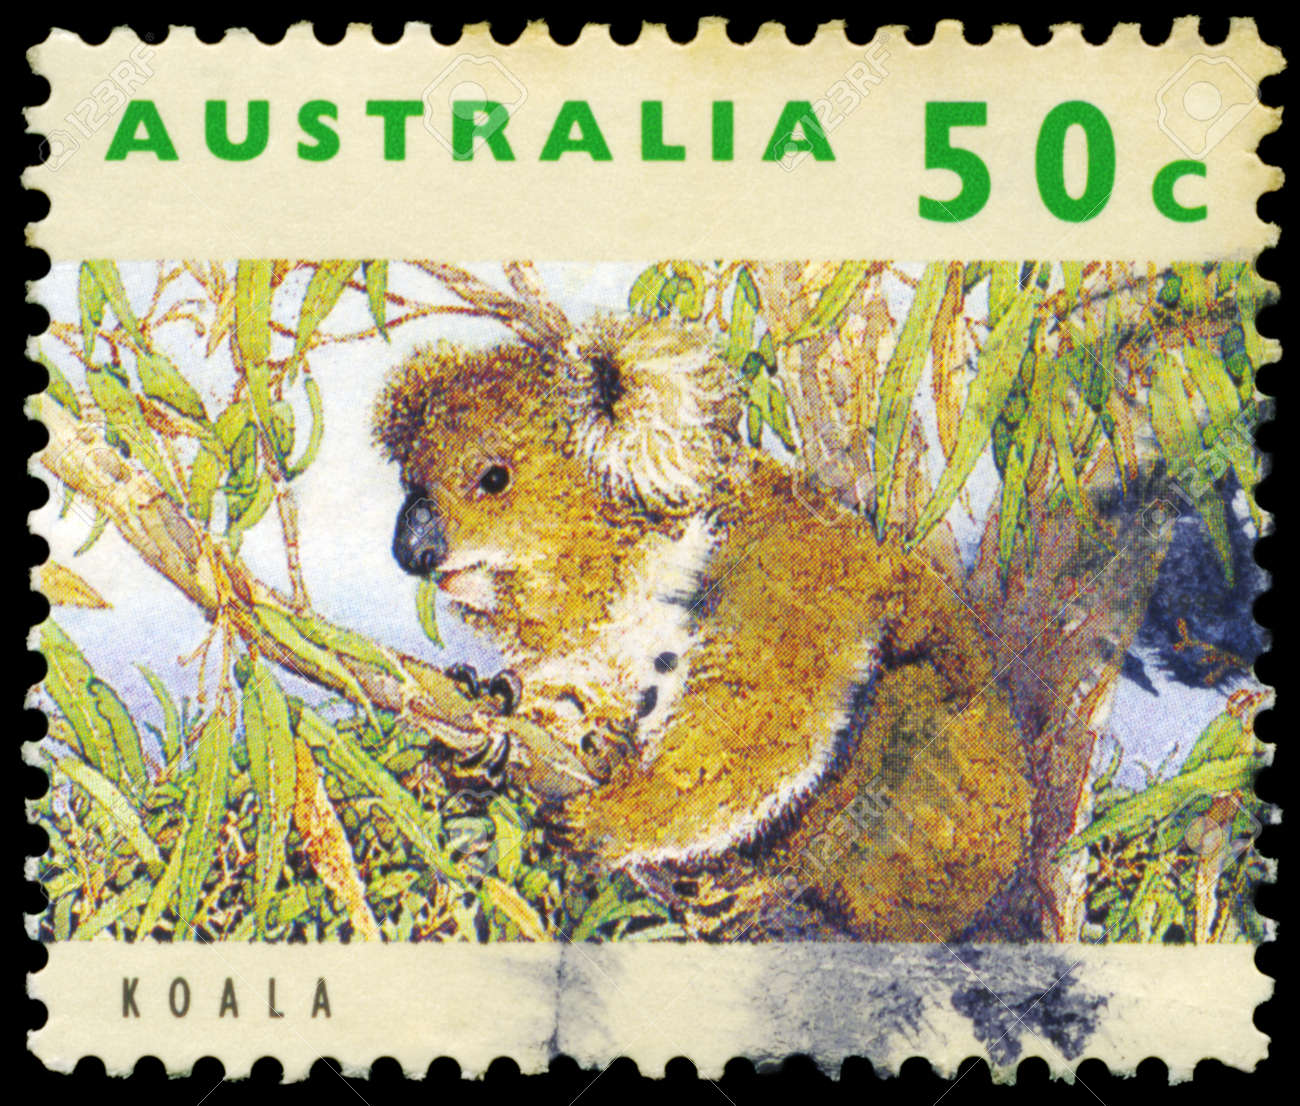 AUSTRALIA - CIRCA 1992: A Stamp printed in AUSTRALIA shows the Koala, series, circa 1992 Stock Photo - 16652253